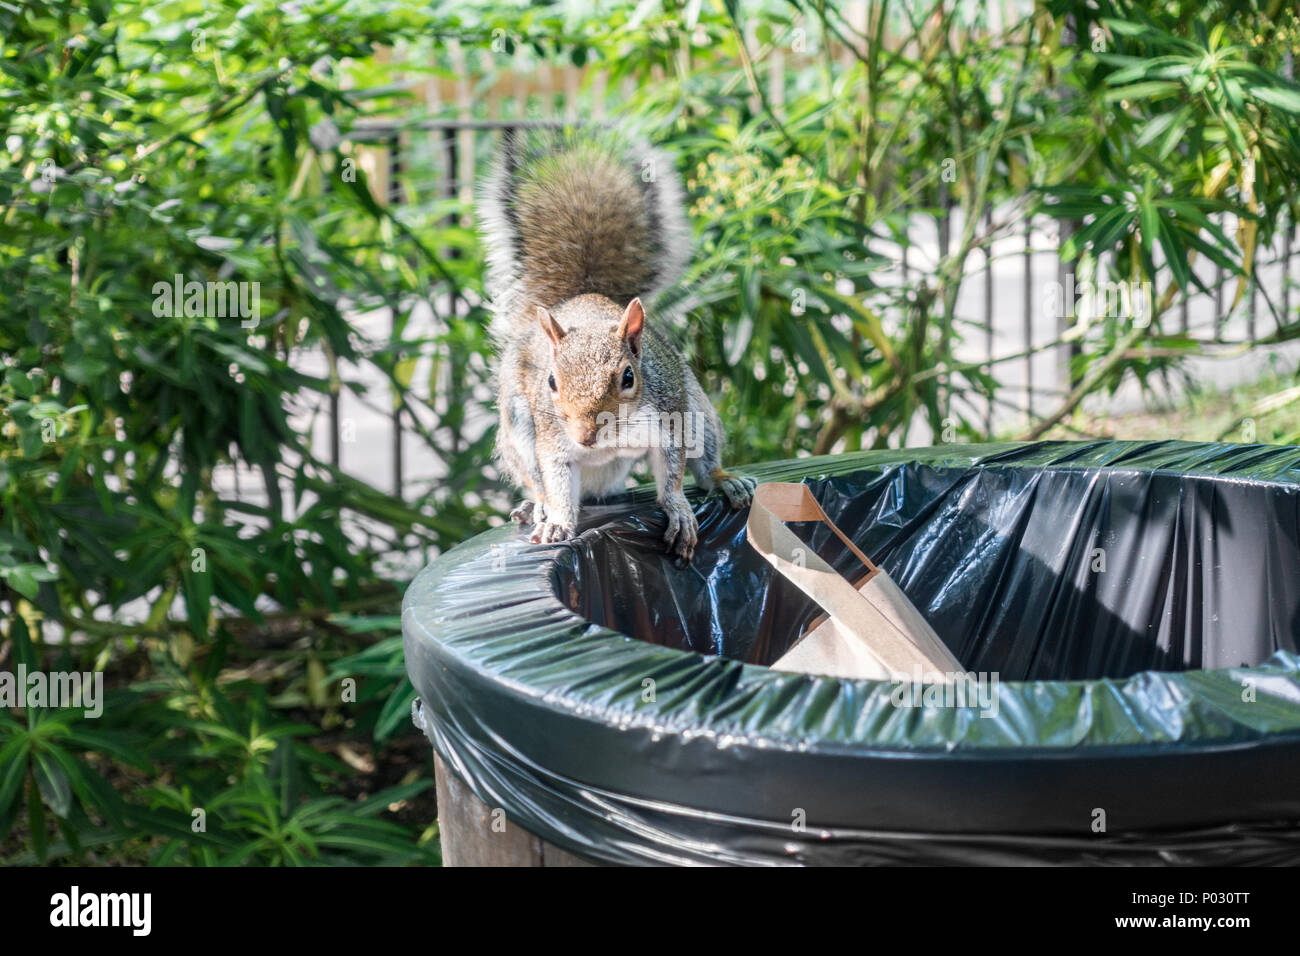 a-squirrel-on-a-rubbish-bin-in-a-public-park-P030TT.jpg